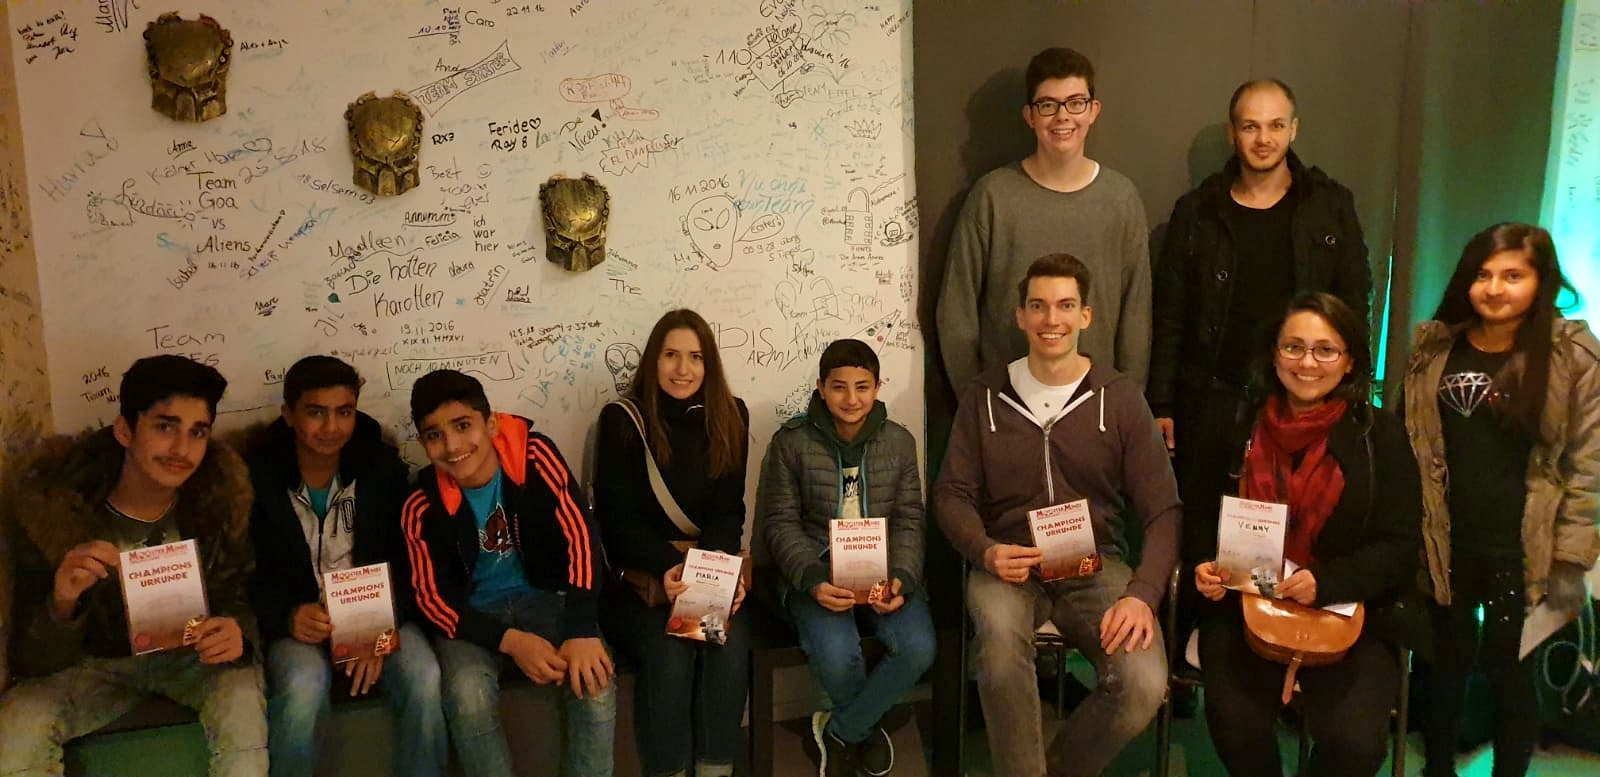 Bild Escape Room Siegburg